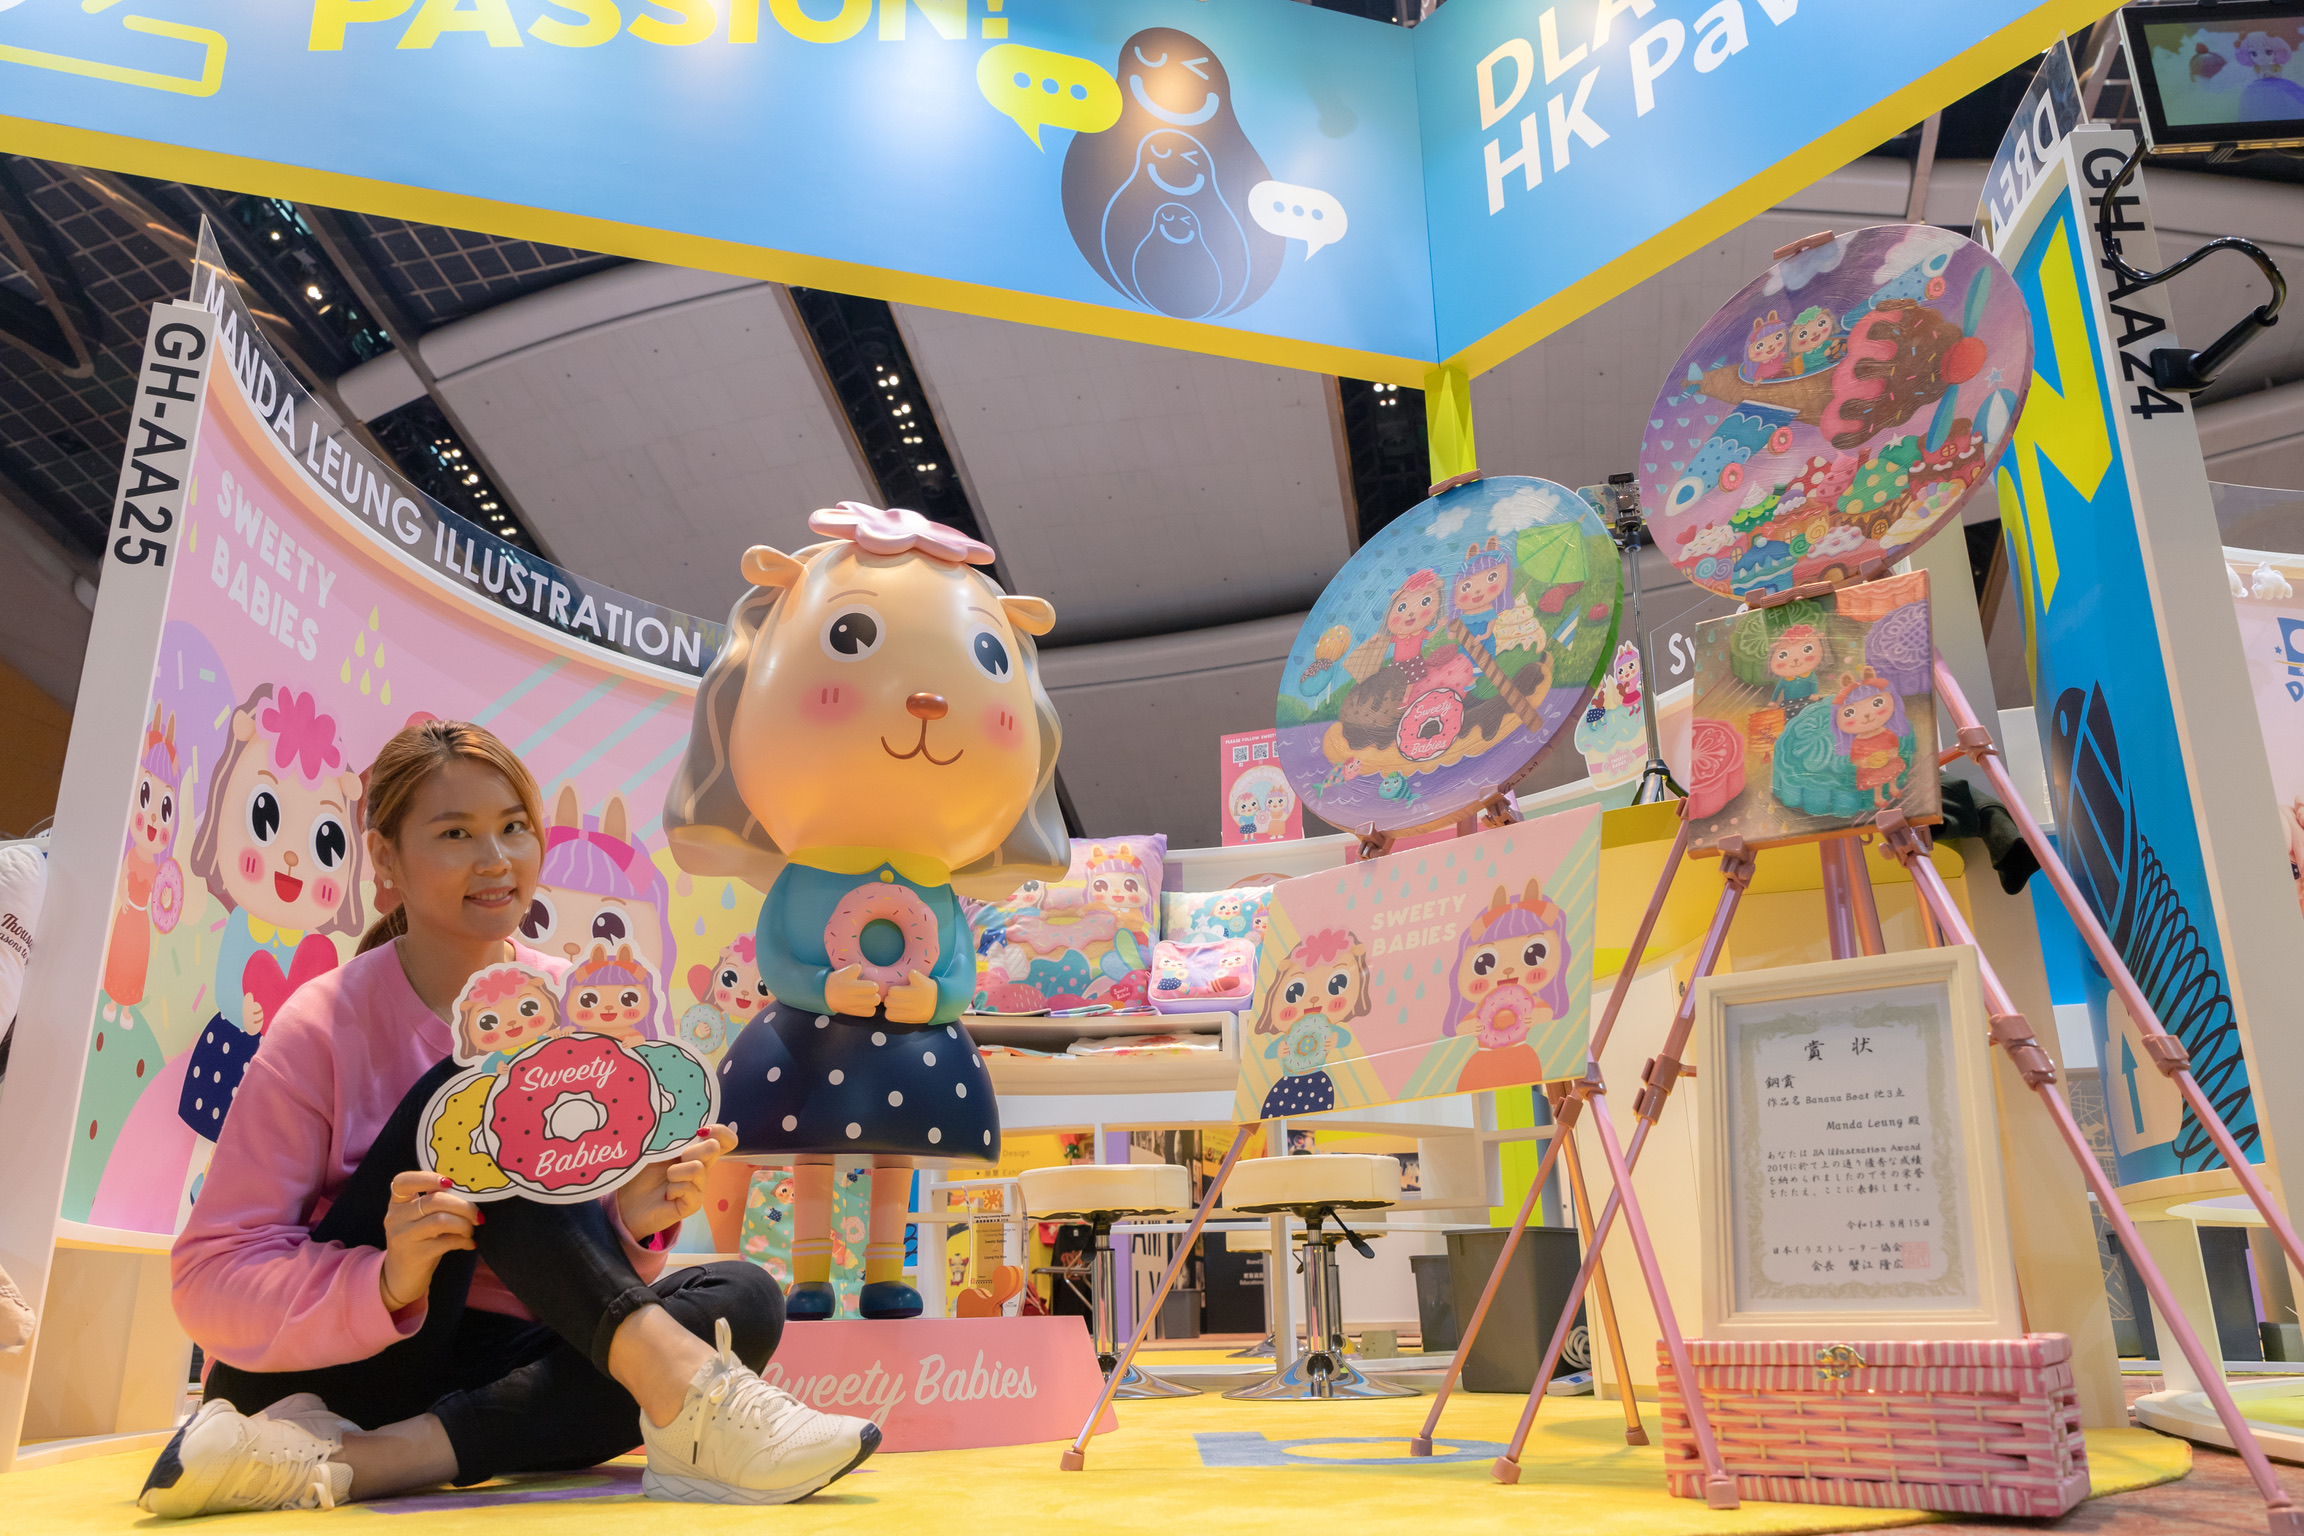 Booth in HK Licensing Show 2020